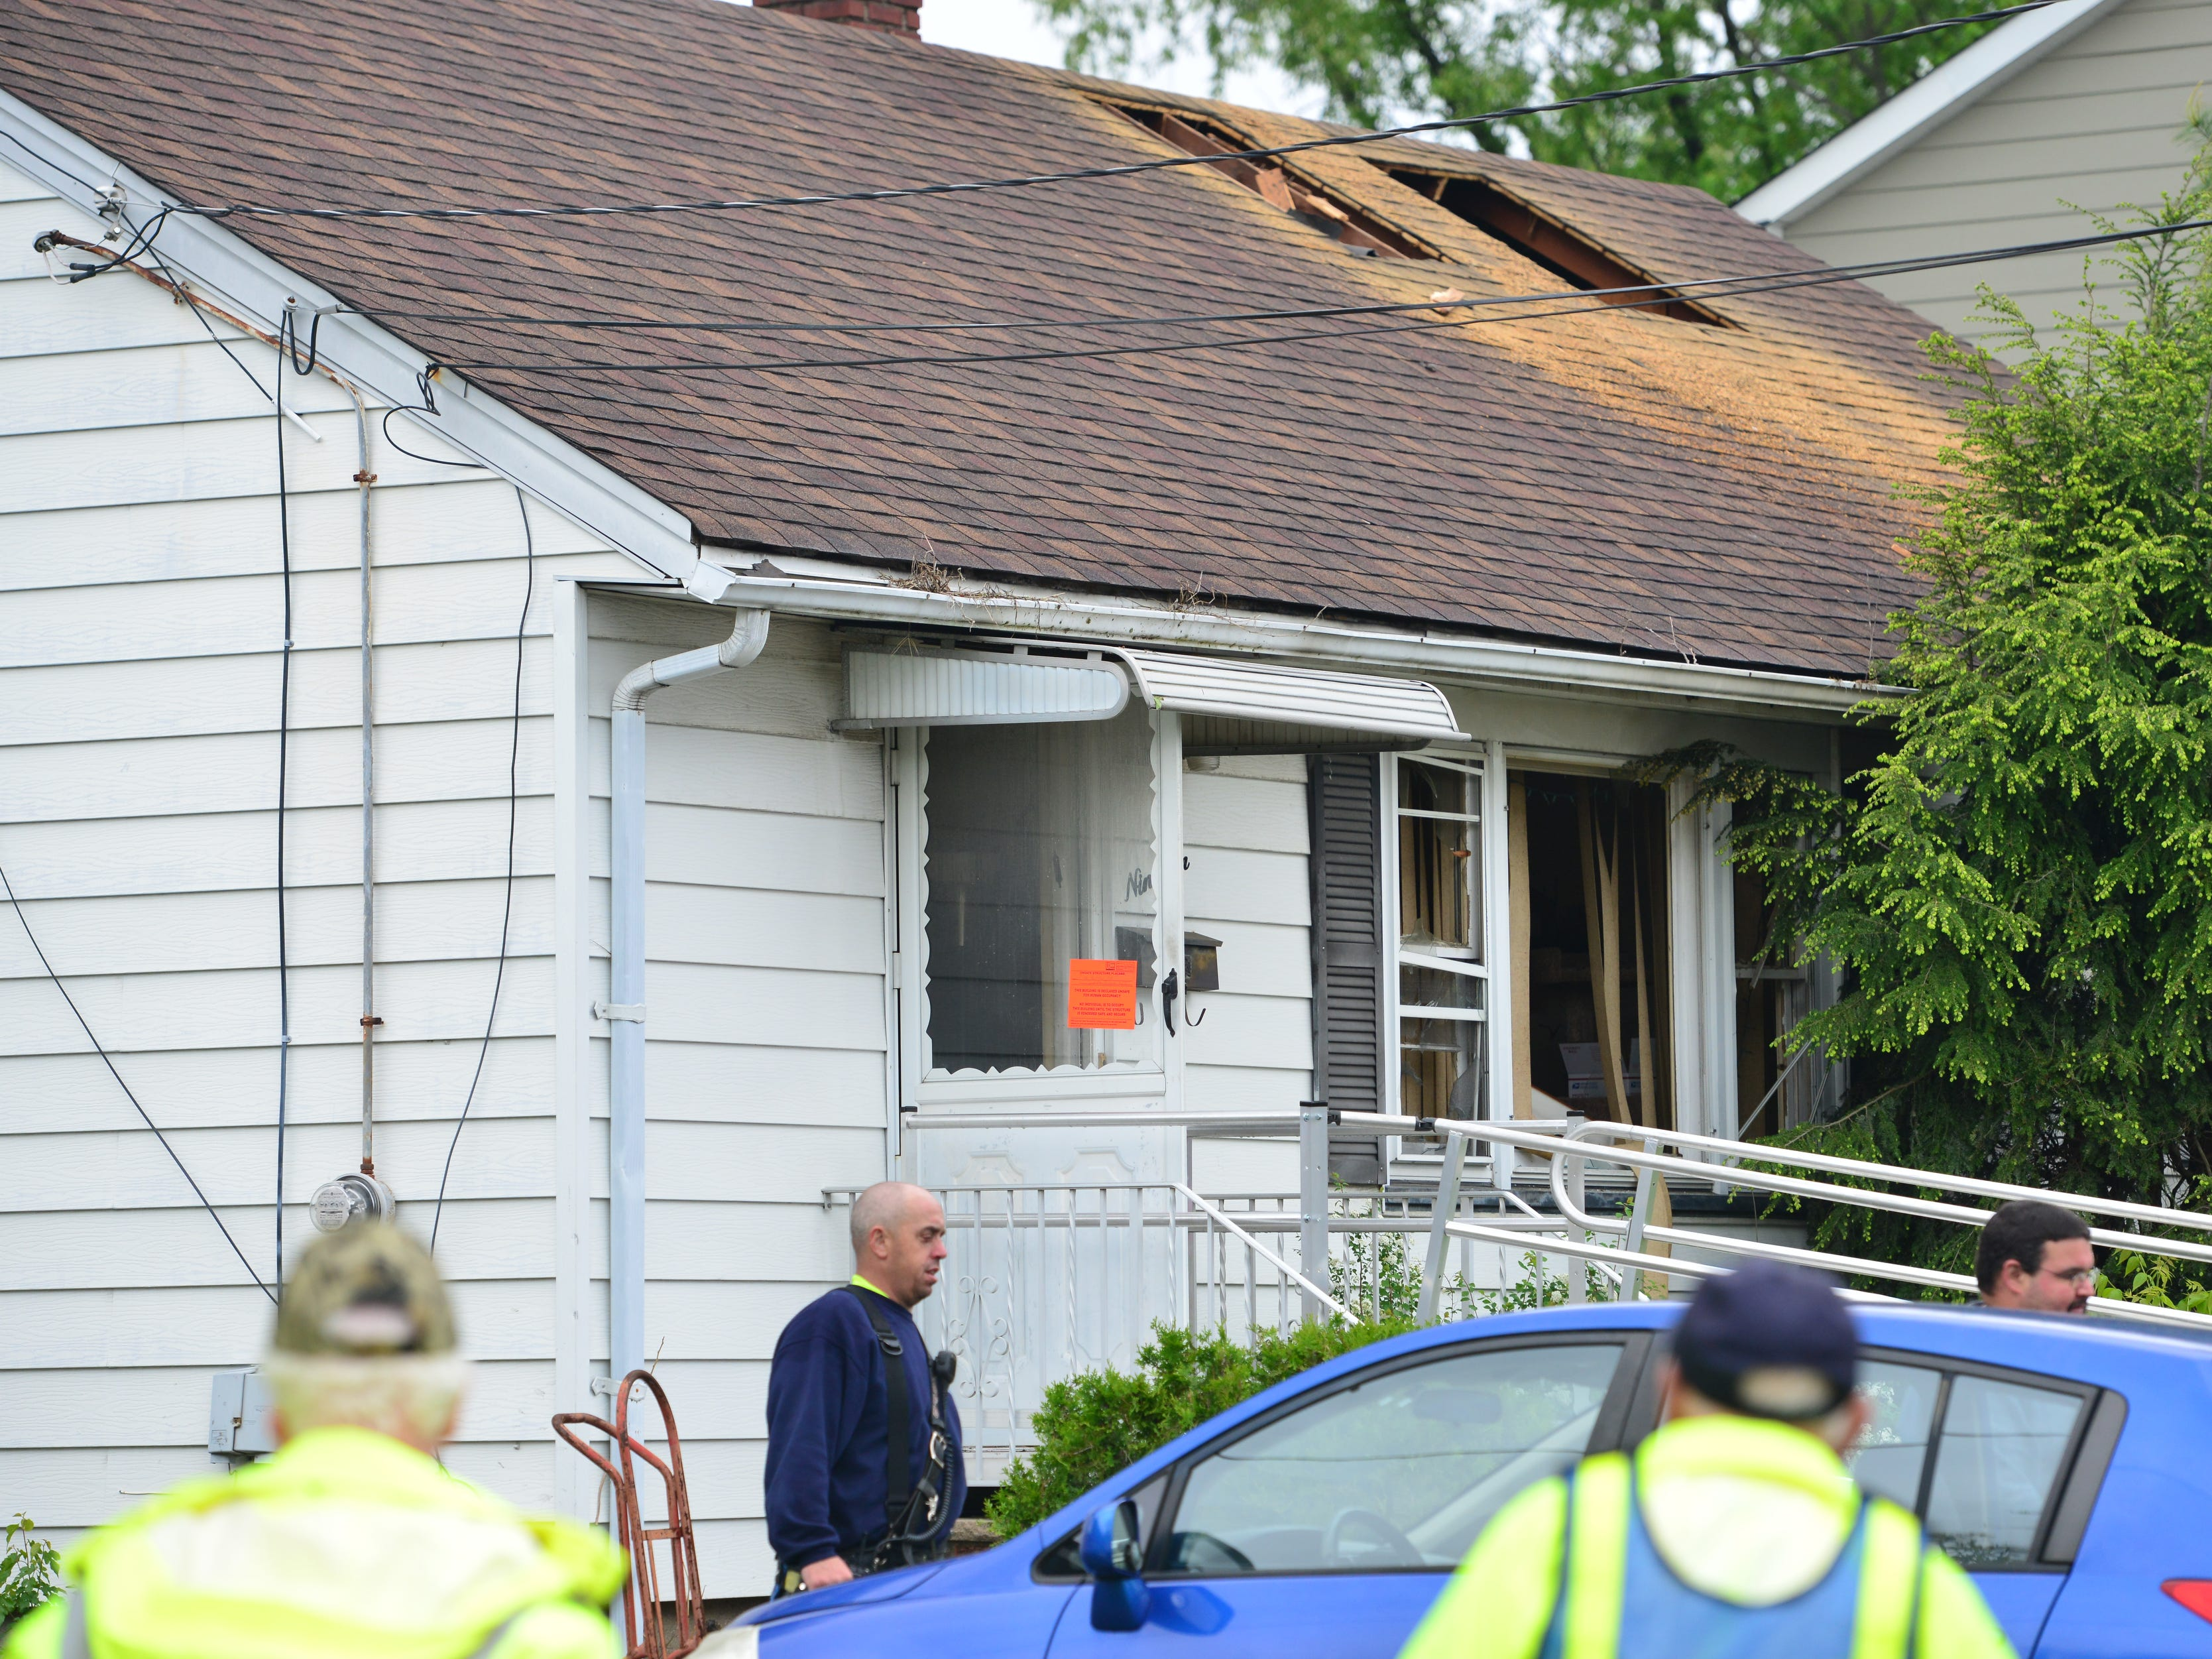 Fire broke out at a home on Hutter St in Saddle Brook, N.J. No injuries were reported.